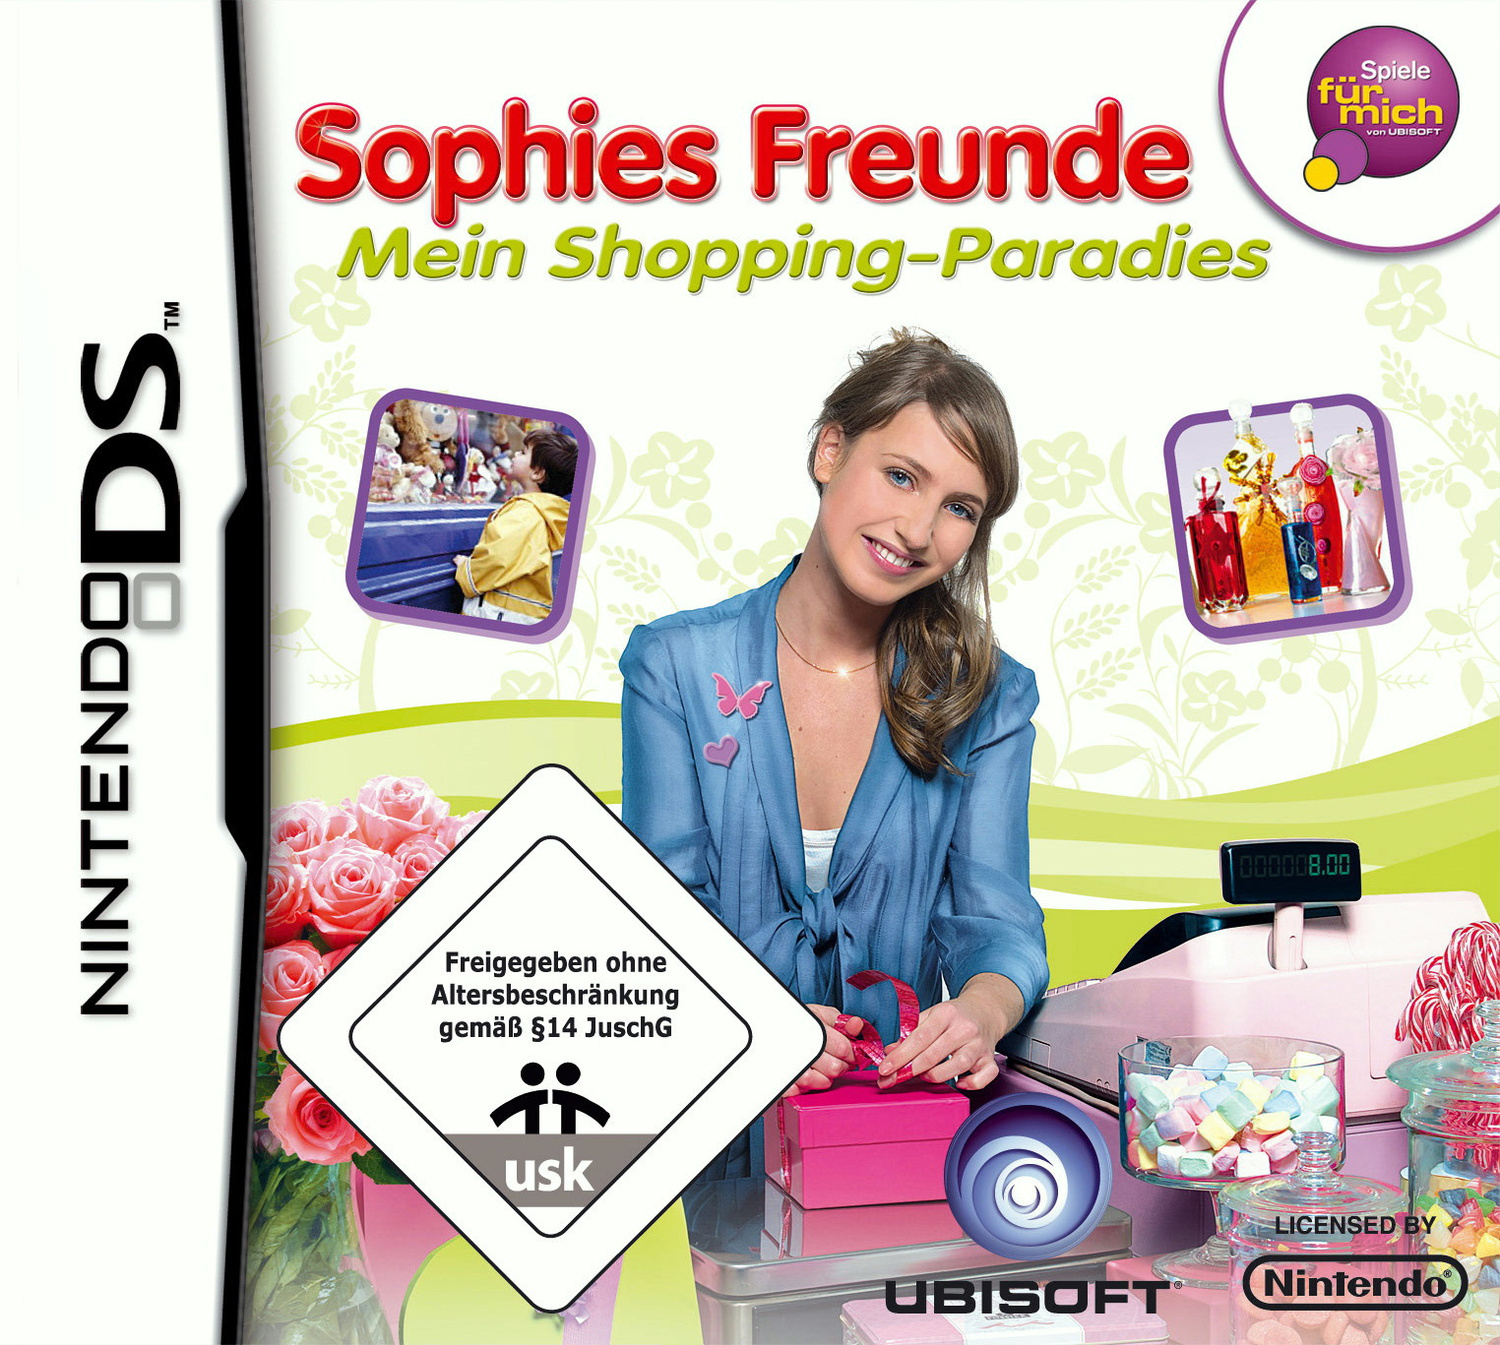 Sophies Freunde: Mein Shopping-Paradies